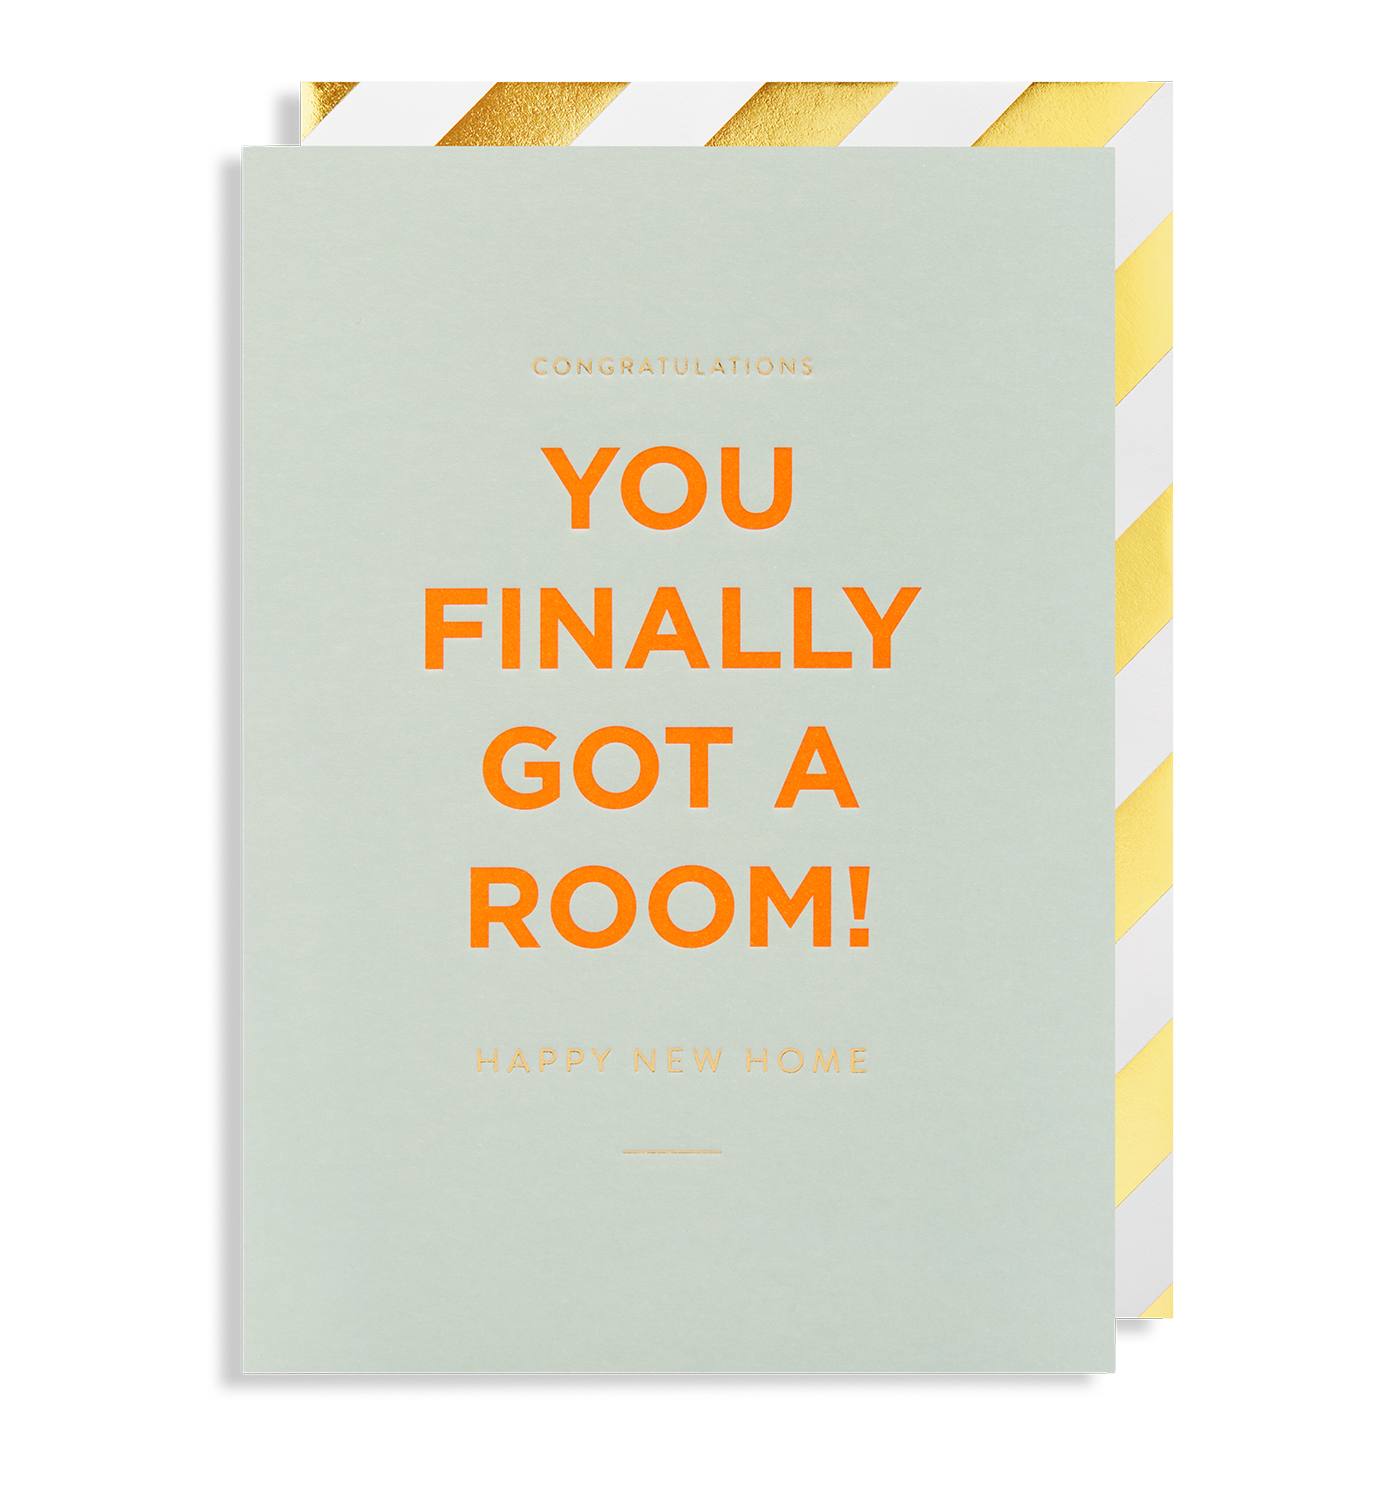 Happy new home greeting card by postco lagom design happy new home greeting card lagom design m4hsunfo